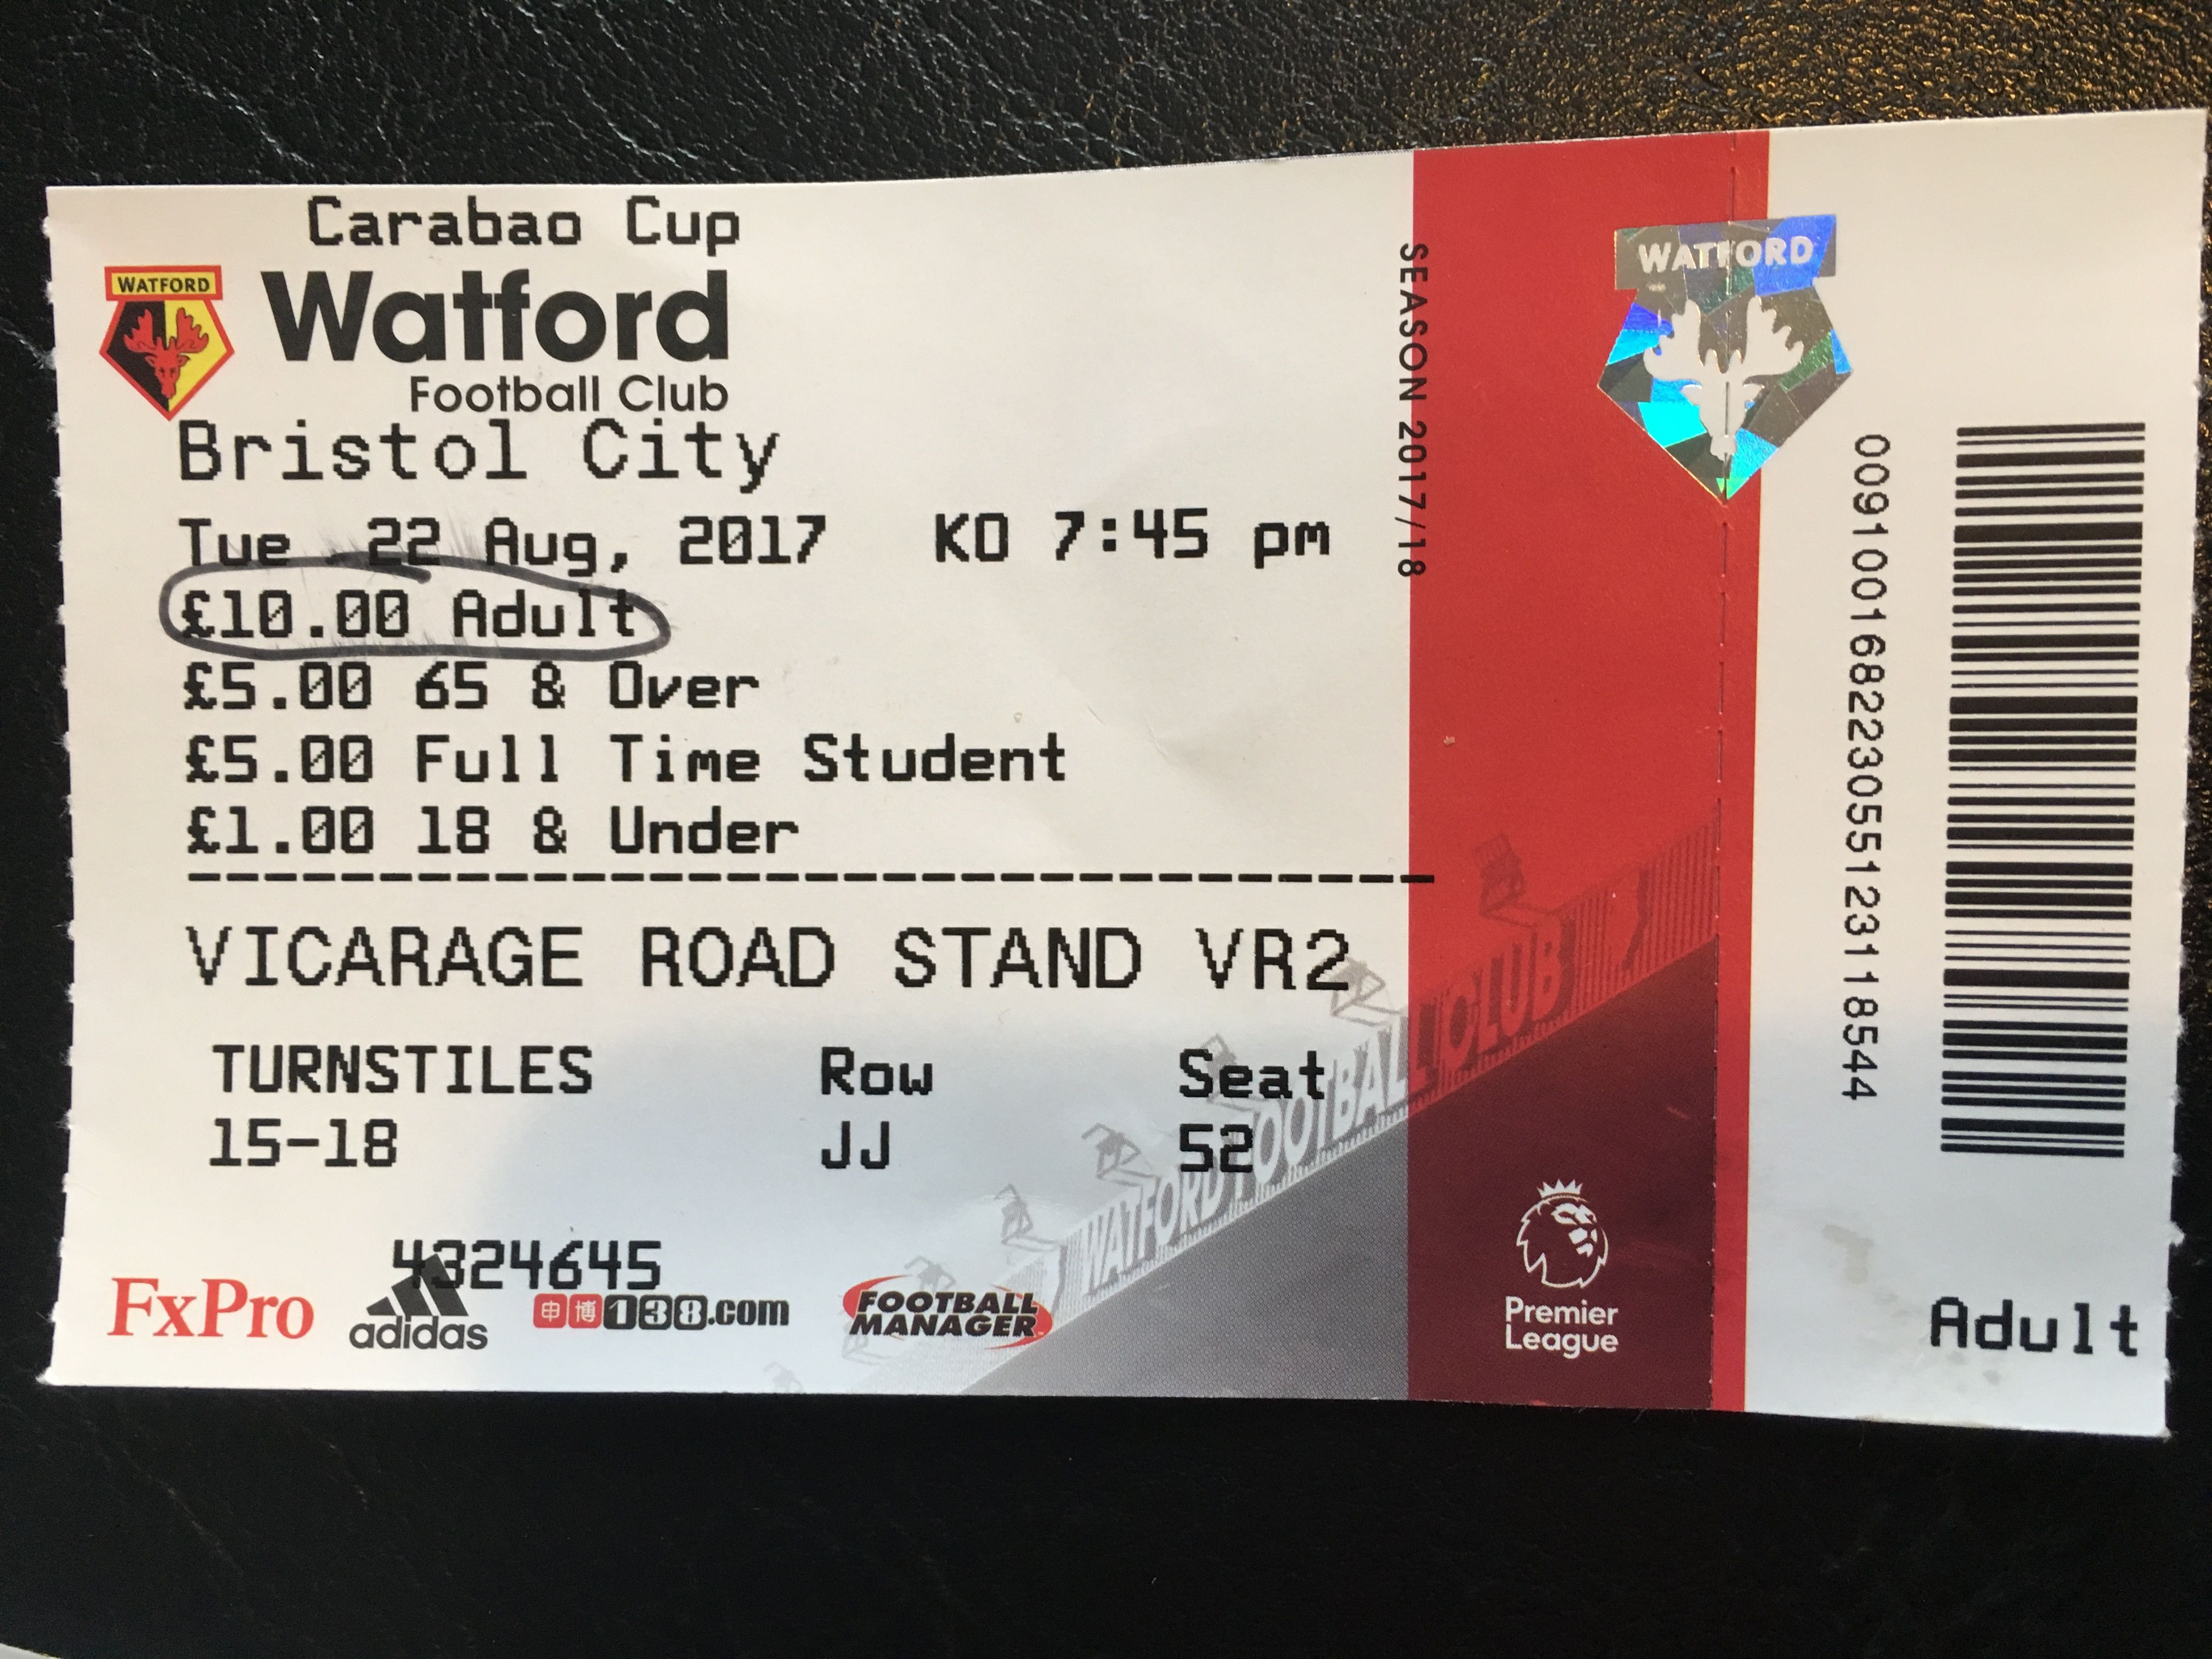 Watford v Bristol City 22-08-17 Ticket